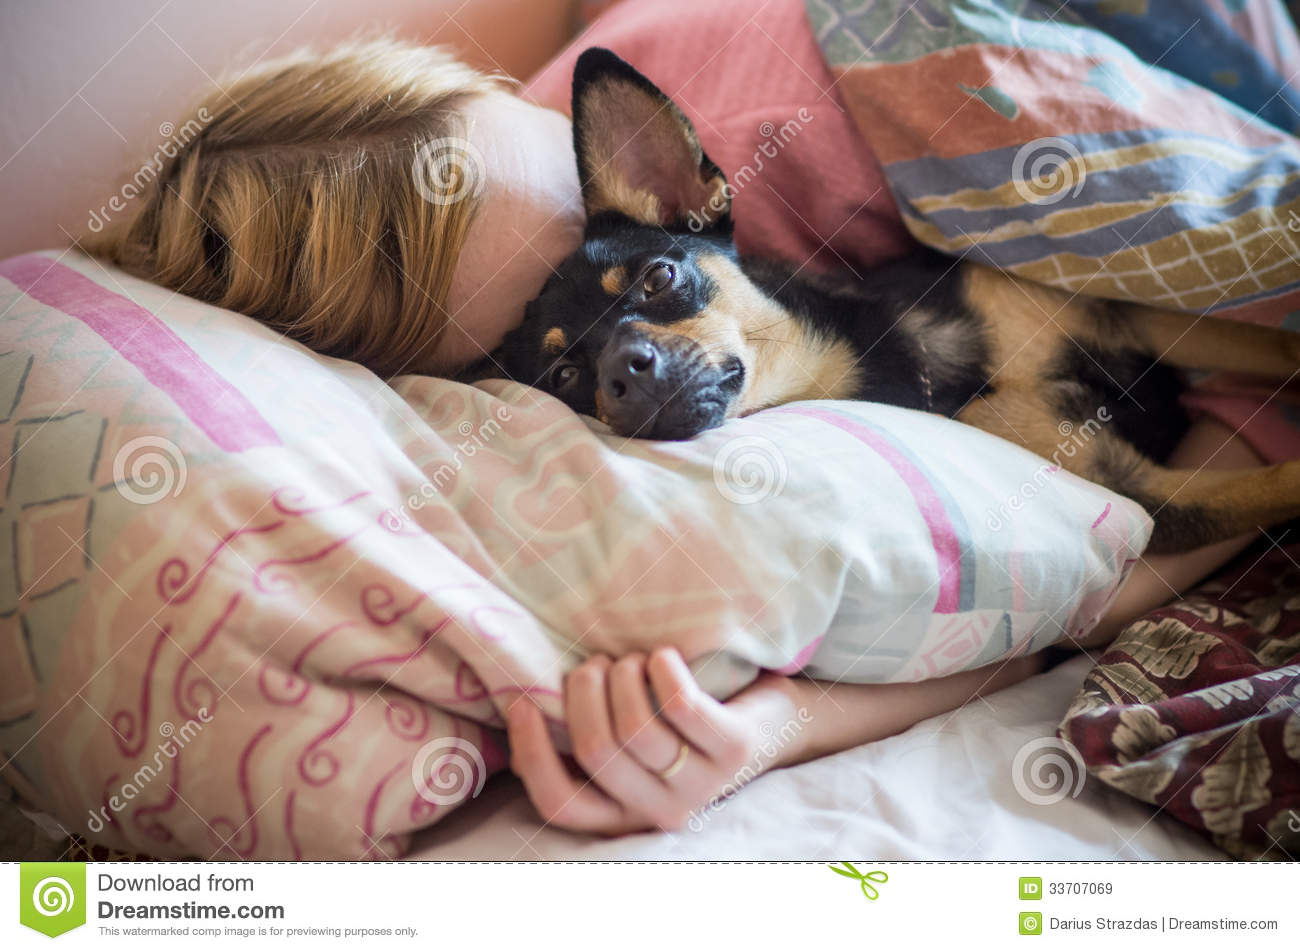 How To Be More Confident In Bed Woman With Dog Sleeping In The Bed Royalty Free Stock